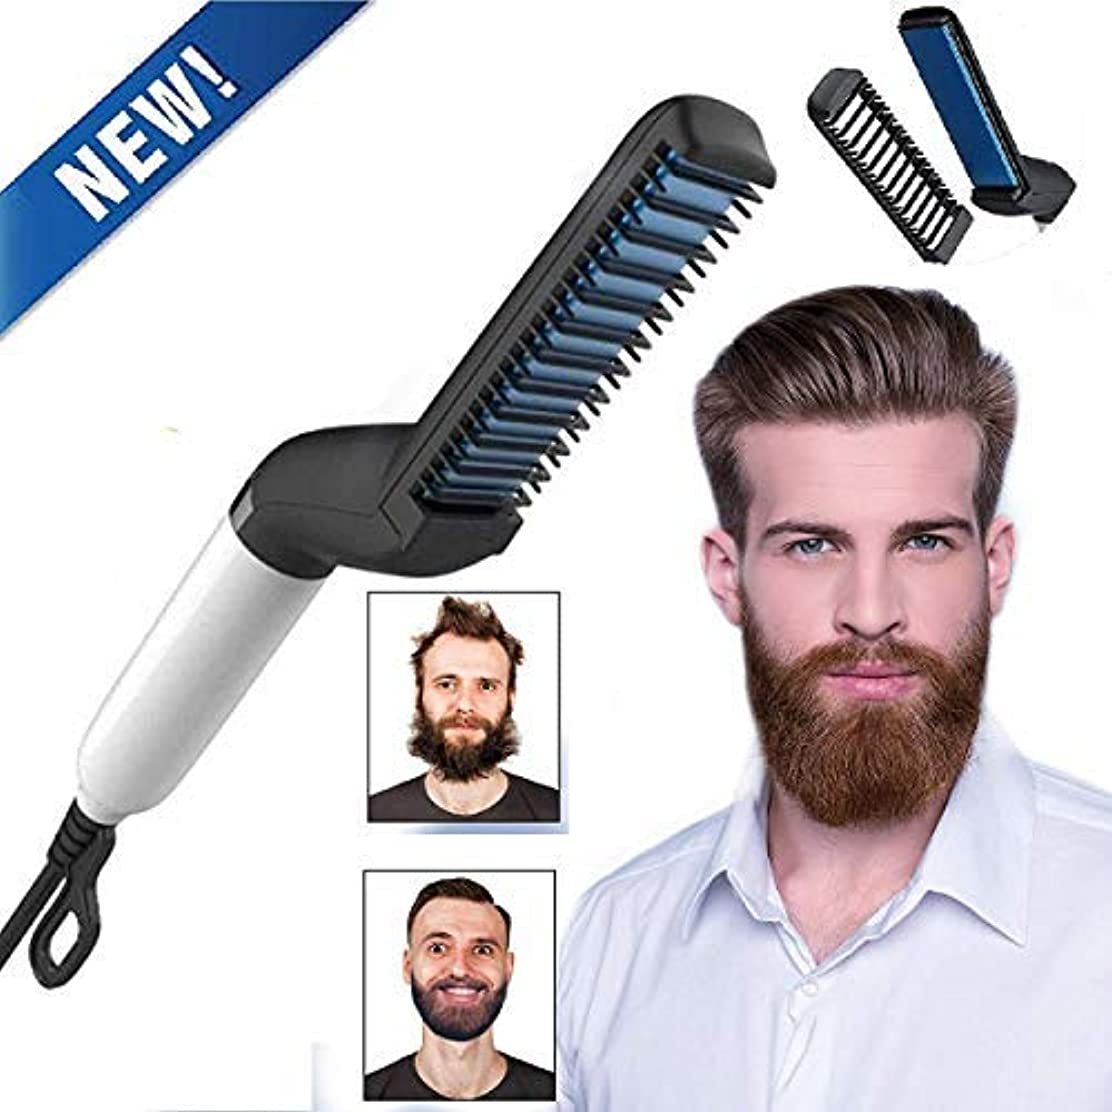 分析限りなくスタッフBeard Straightener,Electric Hot Hair Comb For Men,Multi-functional styling comb (new packaging and new design)...